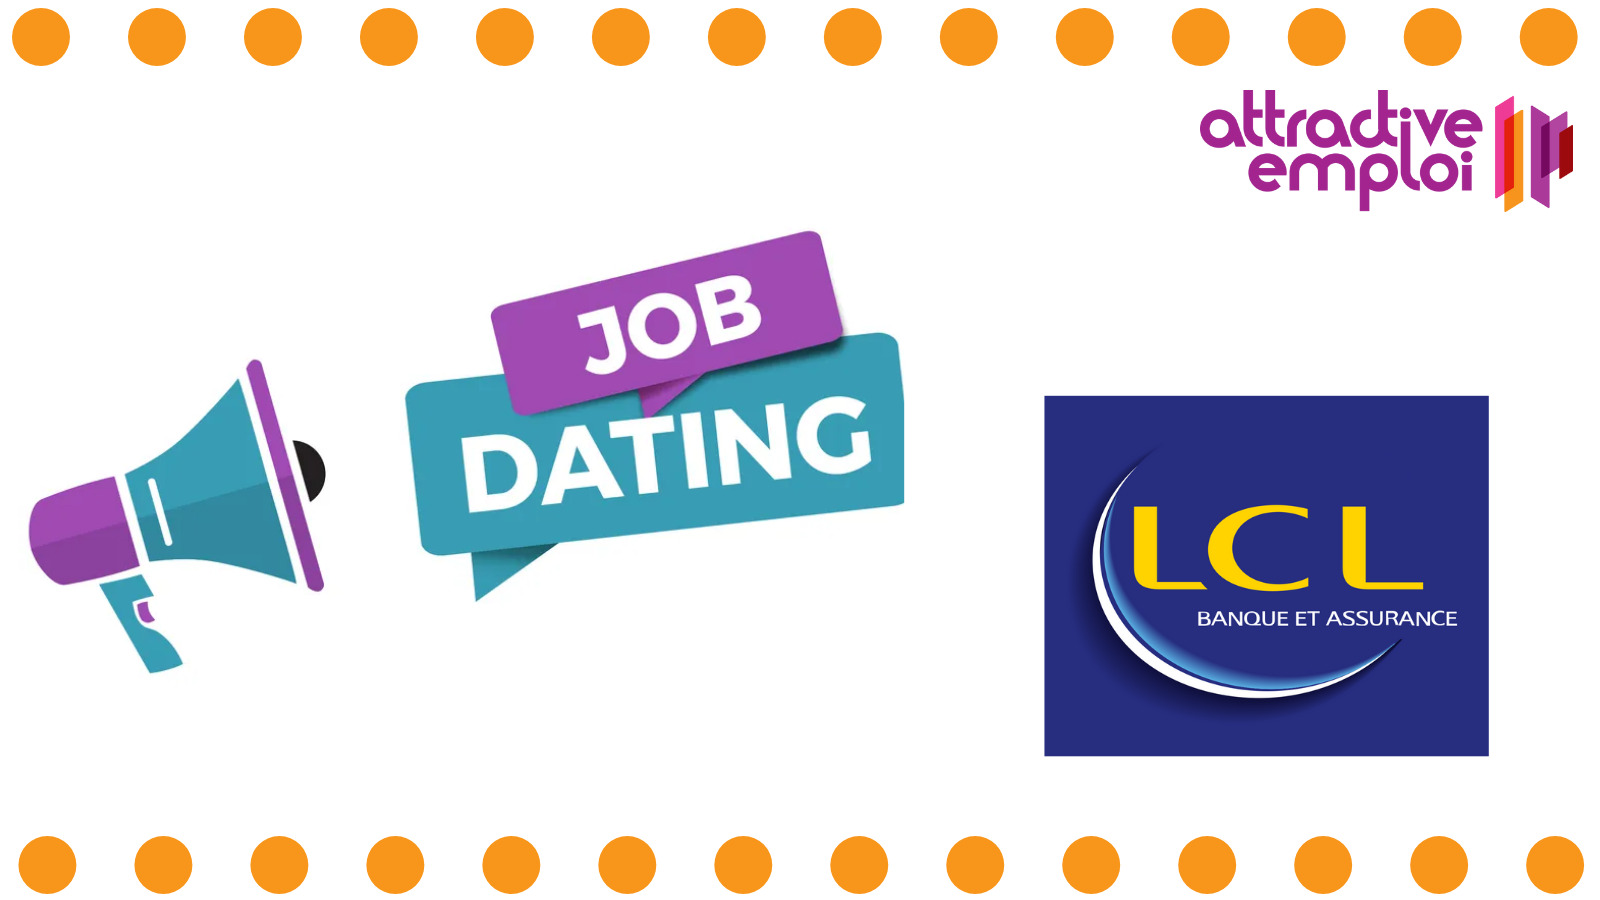 Job dating LCL